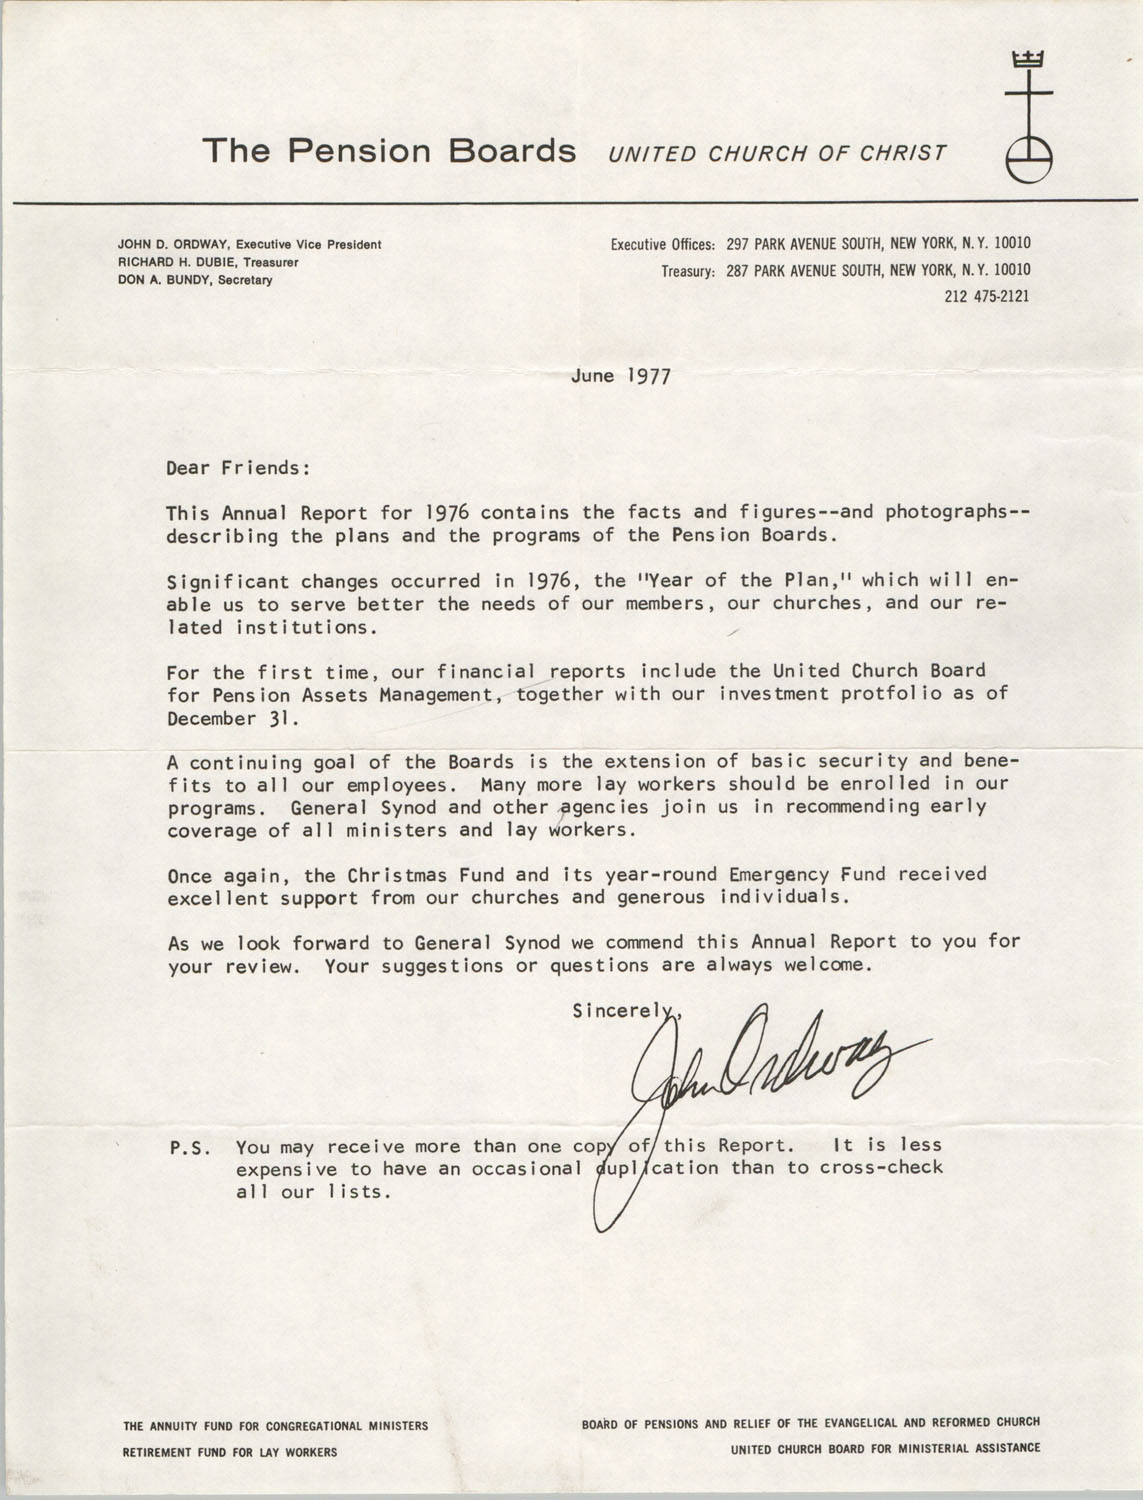 Letter from John Ordway to Septima P. Clark, June 1977